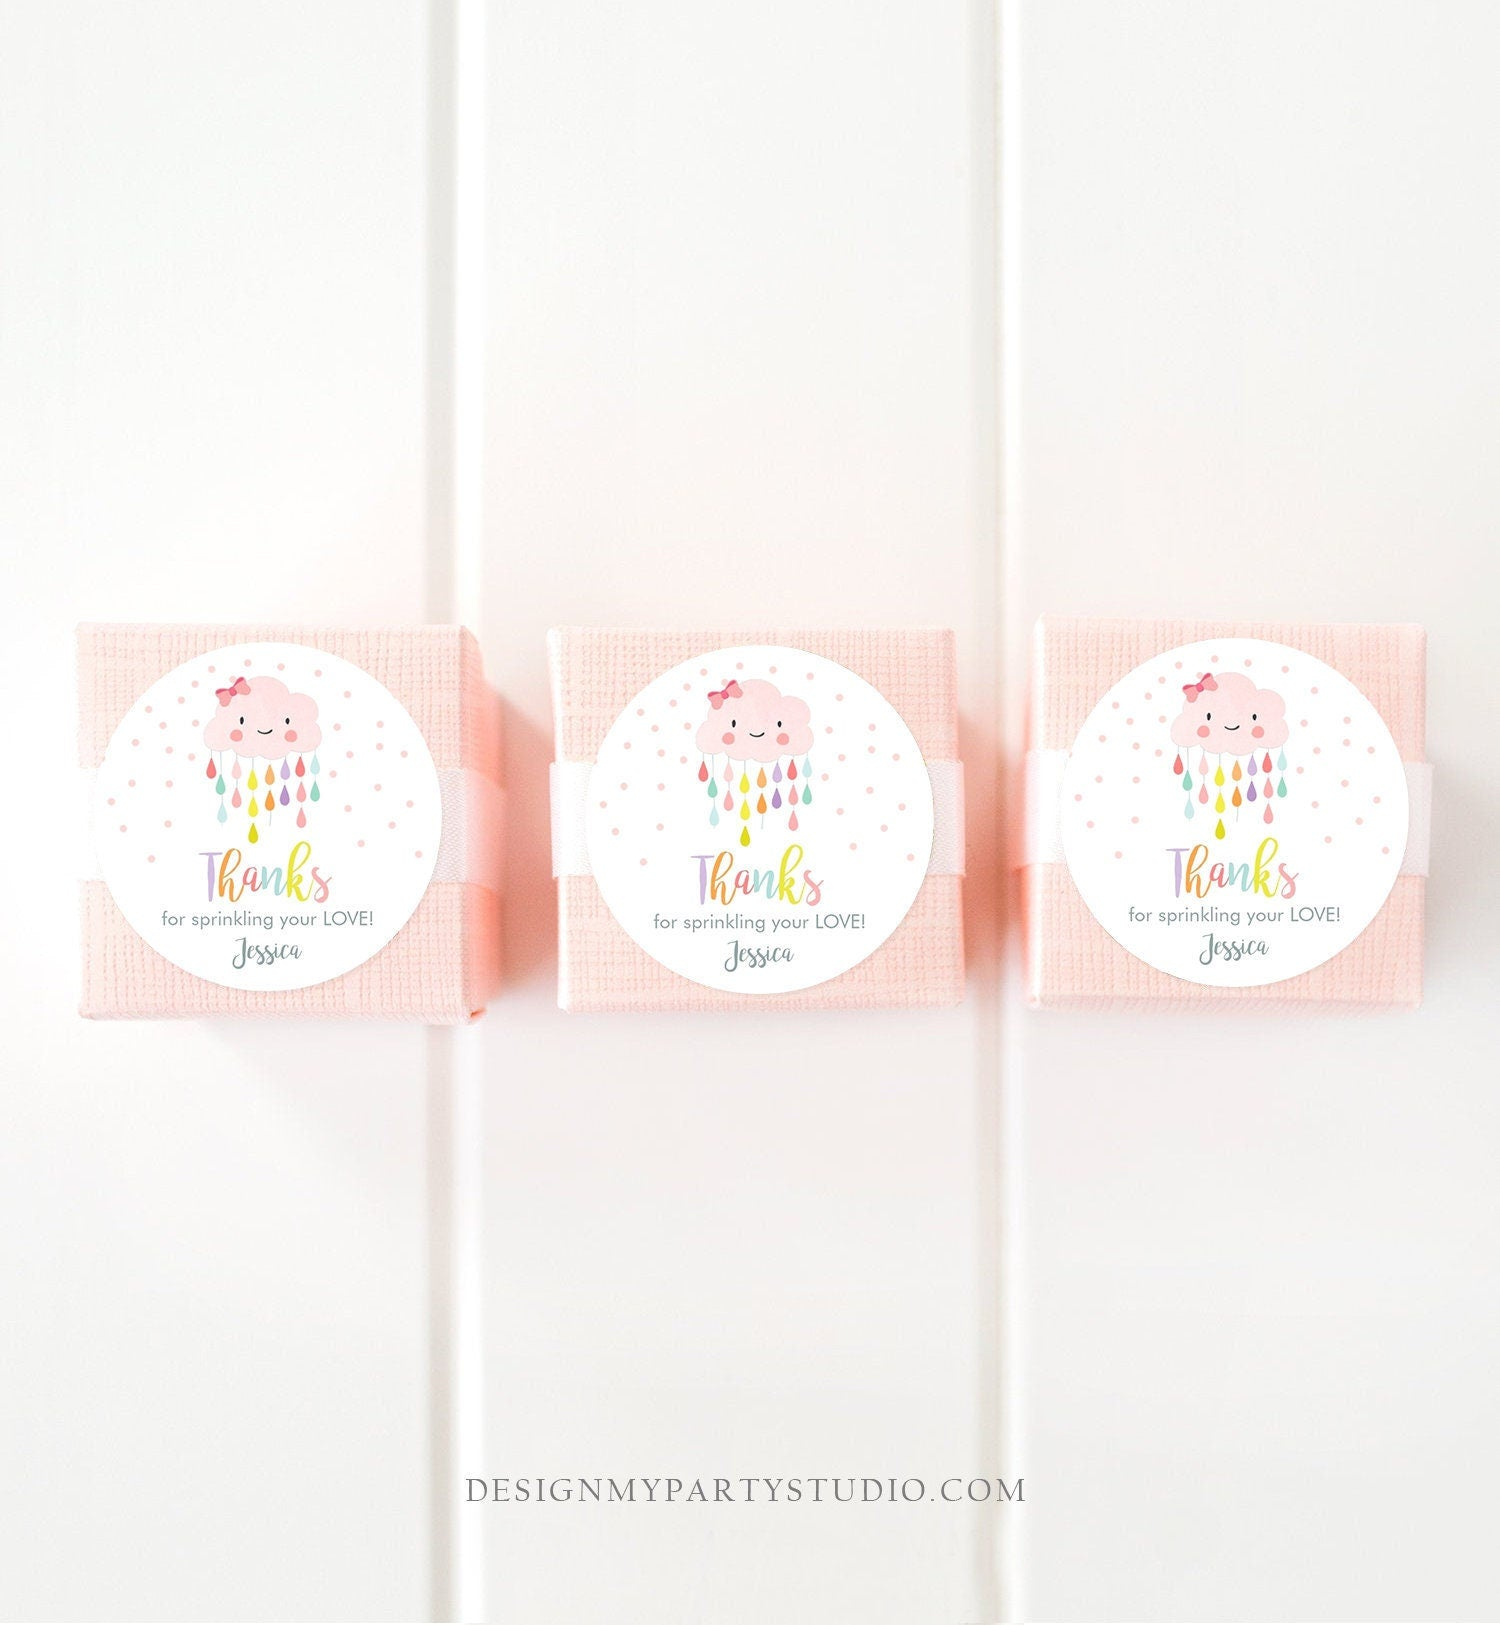 Editable Cloud Baby Shower Favor Tag Pink Bow Round Square Labels Cloud Thank You Tag Stickers Raindrops Sprinkle Shower Template Corjl 0036